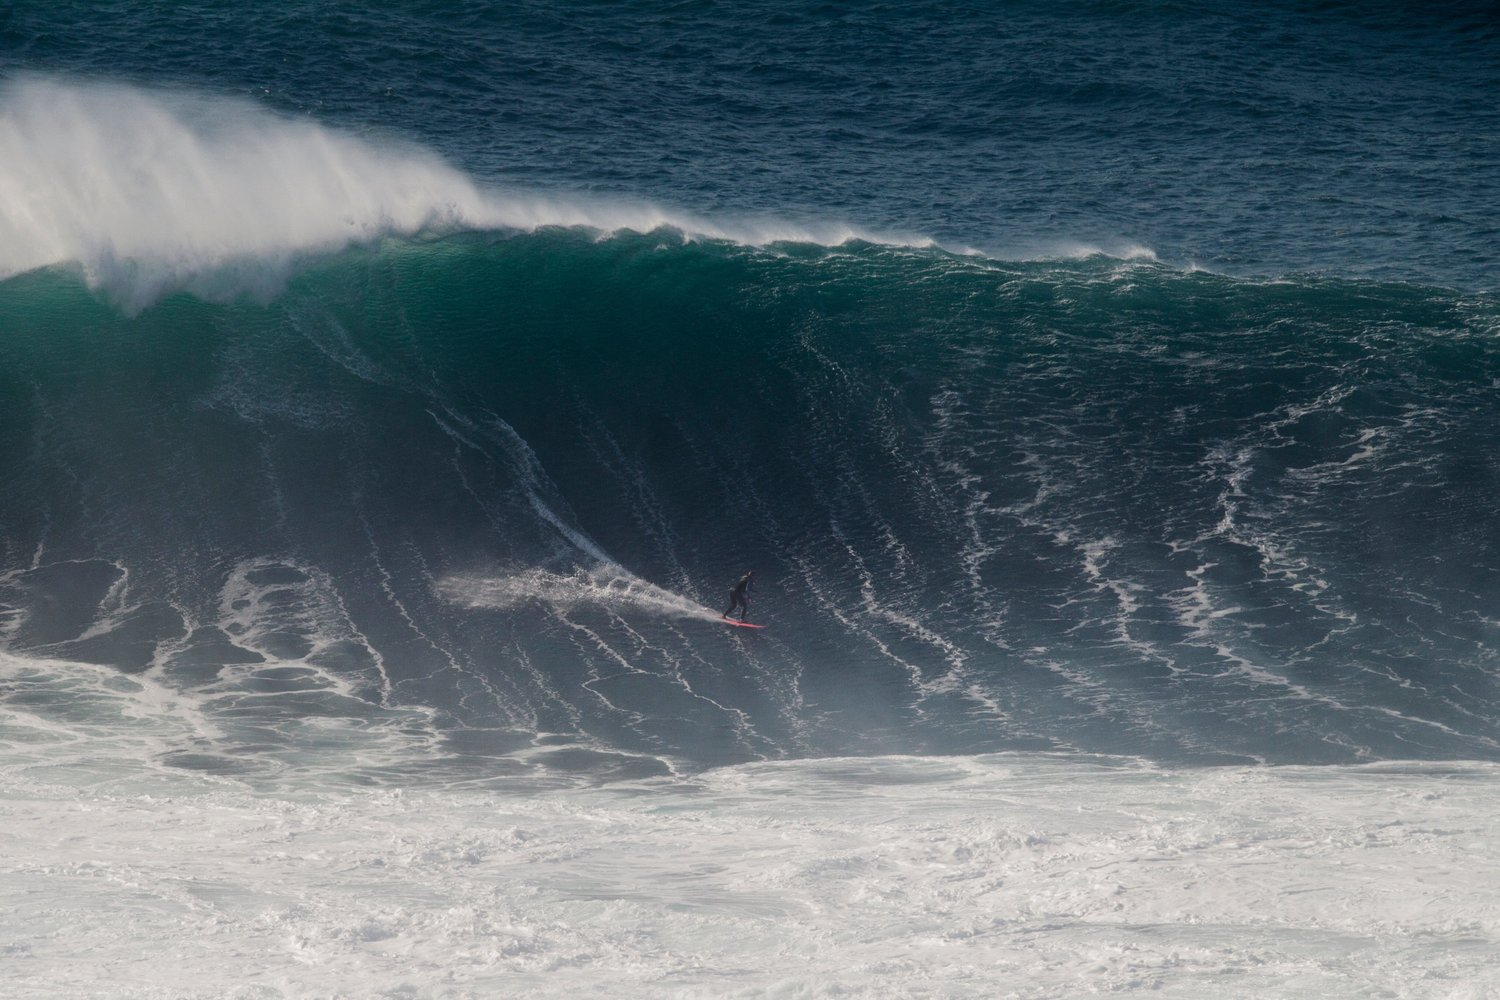 maya-gabeira-returns-to-nazaré-bottom-turn